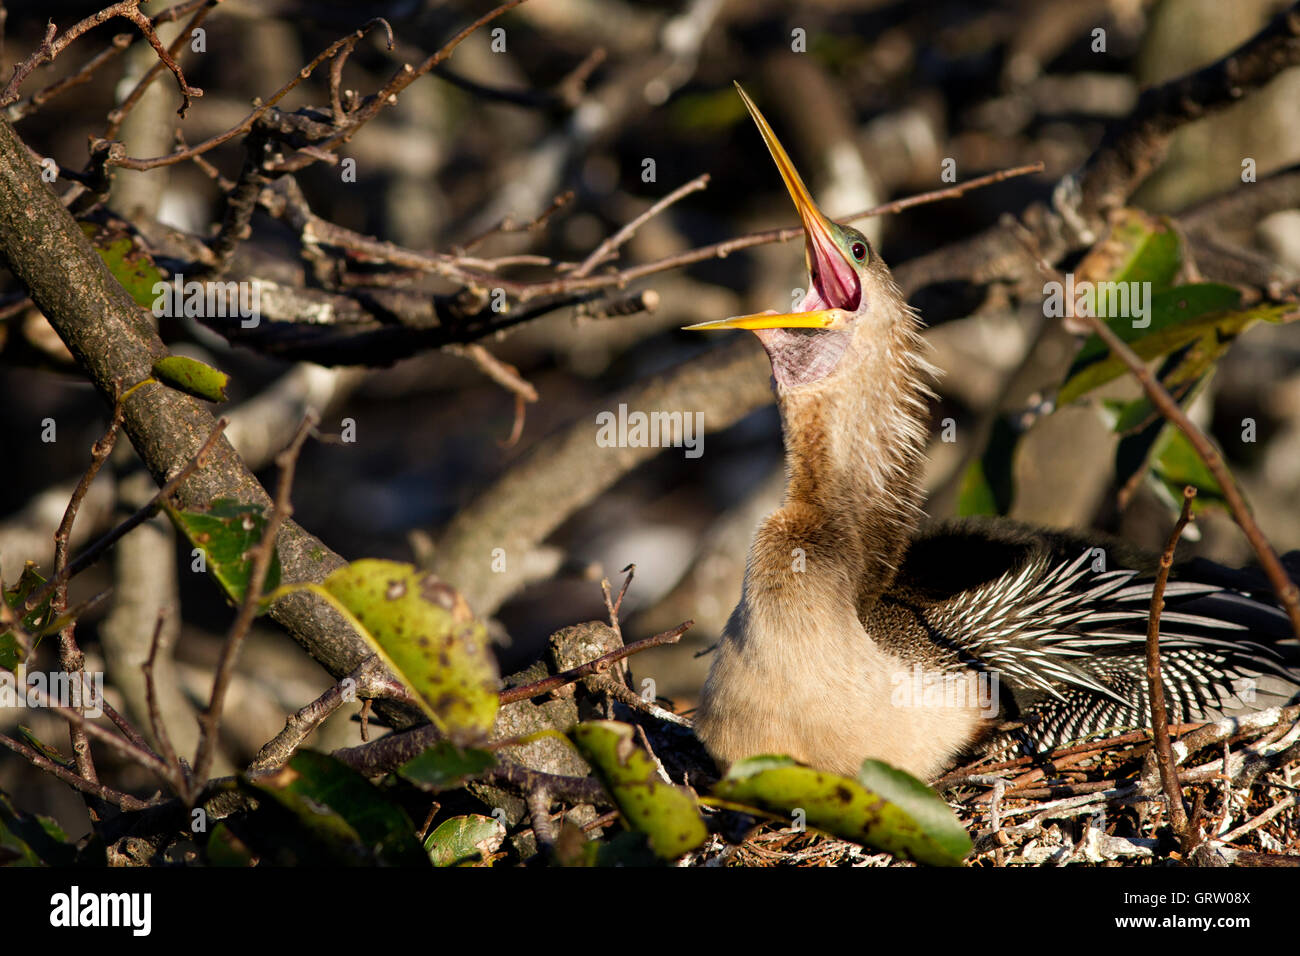 She's up!! Female anhinga in a broad yawn awakening from a well earned snooze while incubating eggs in her nest. - Stock Image